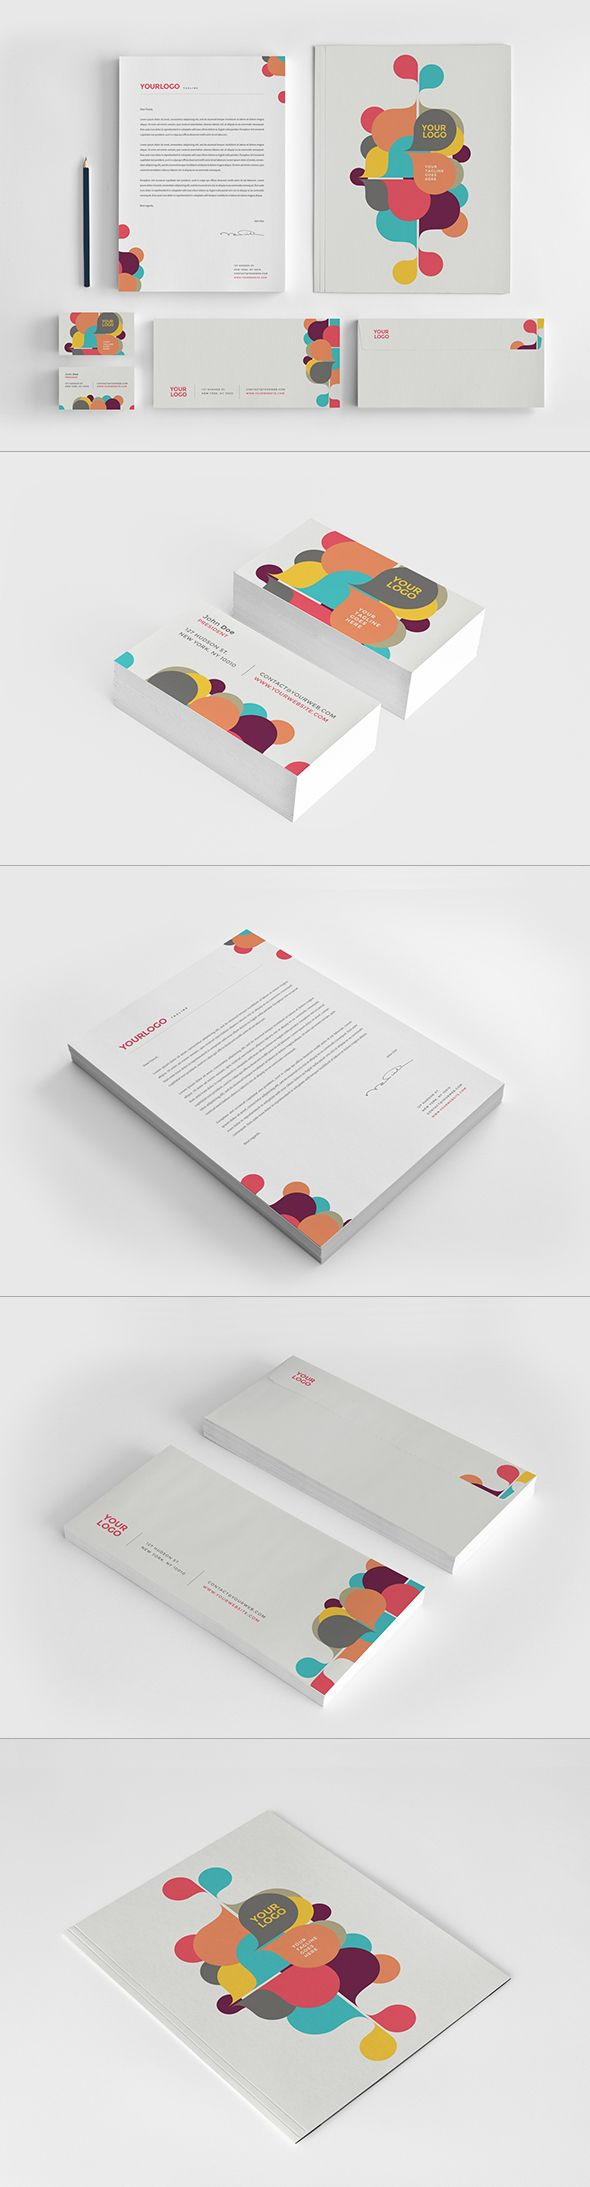 Colorful Kids Circles Stationery. Download here: http://graphicriver.net/item/colorful-kids-circles-stationery/12722534?ref=abradesign